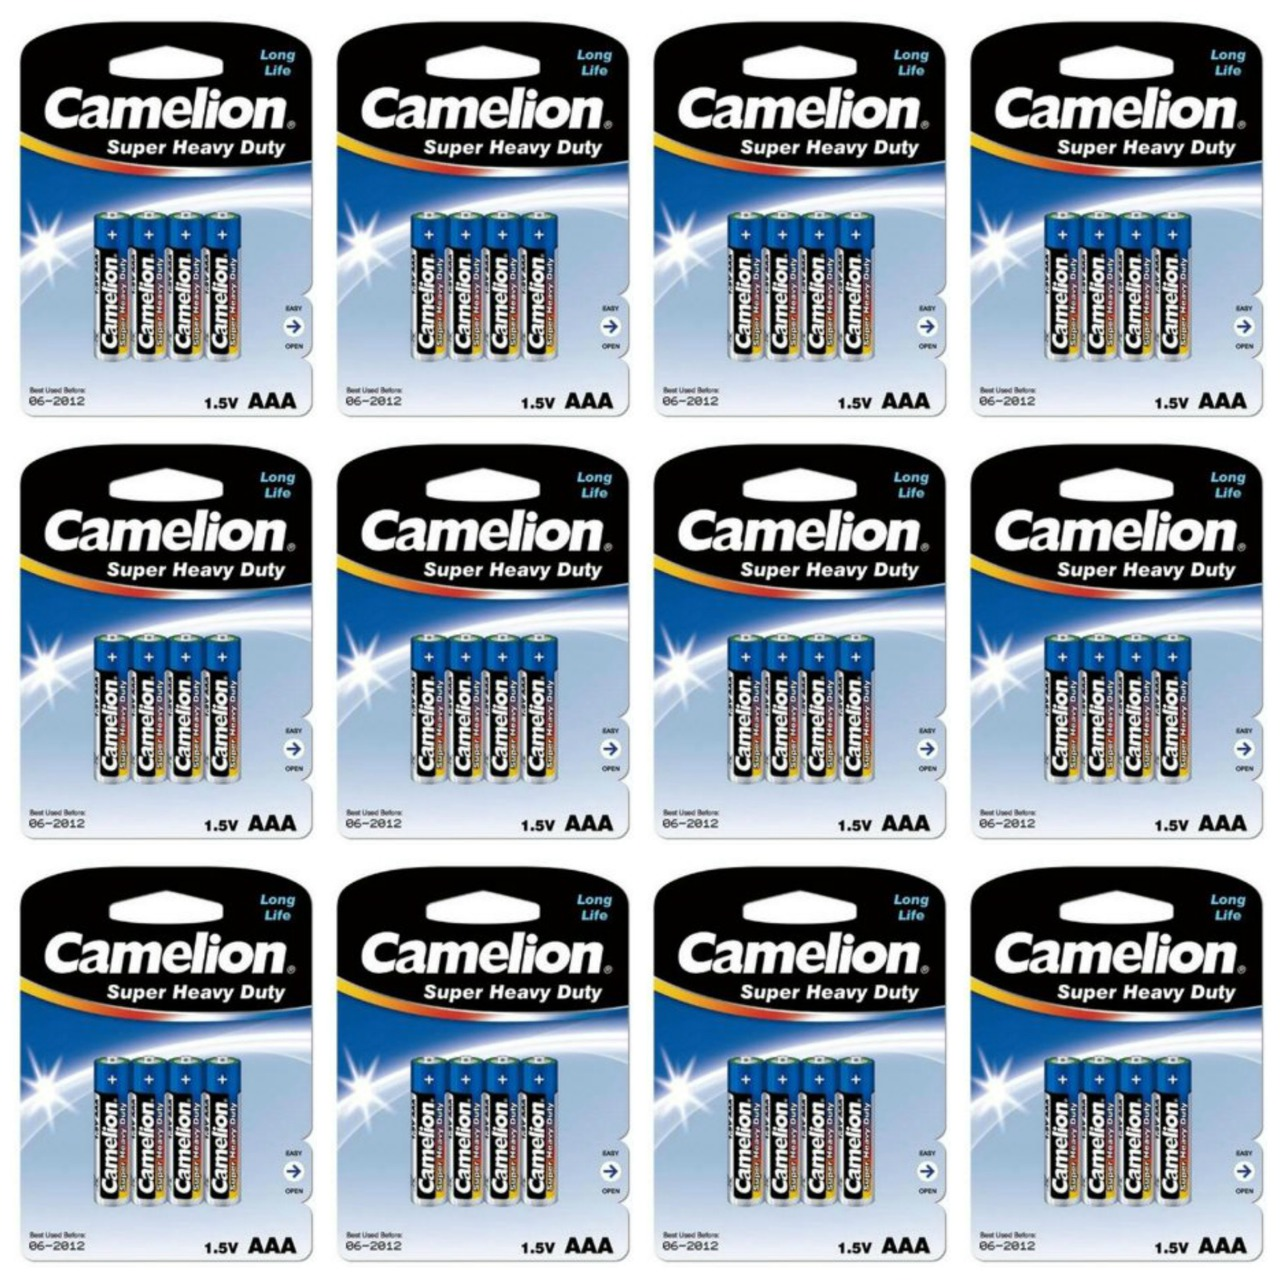 Camelion AAA Size Super Heavy Duty Batteries 100 Pack - Retail Carded + Free Shipping